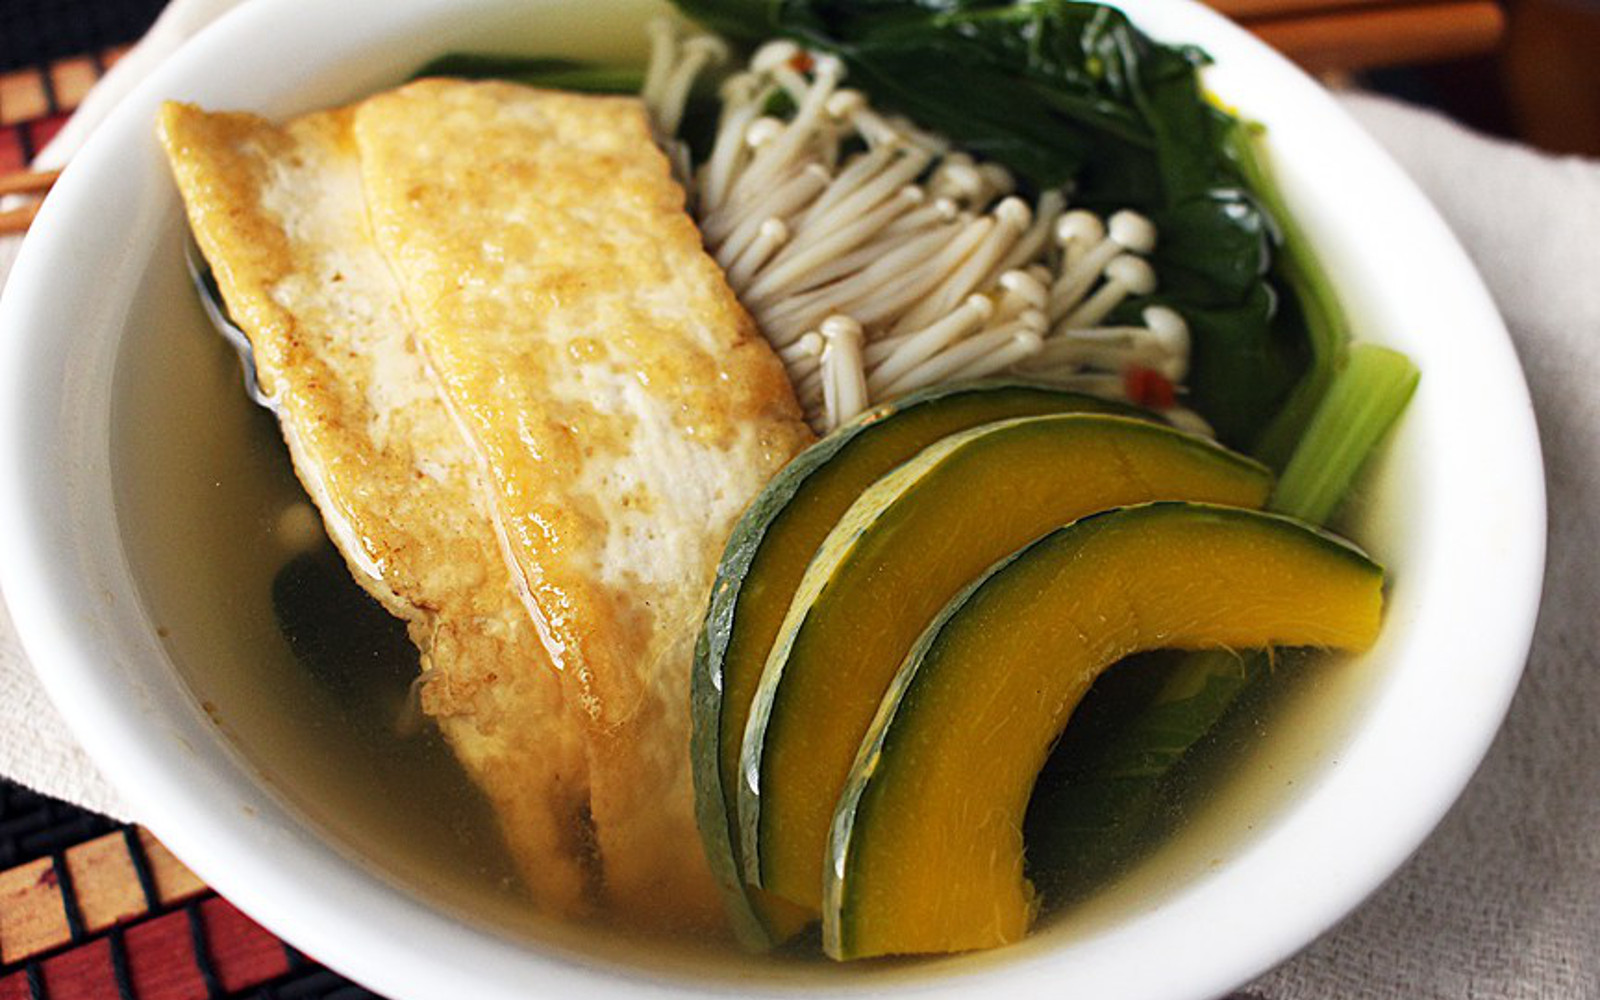 Asian Greens Soup With Tofu and Enoki Mushrooms